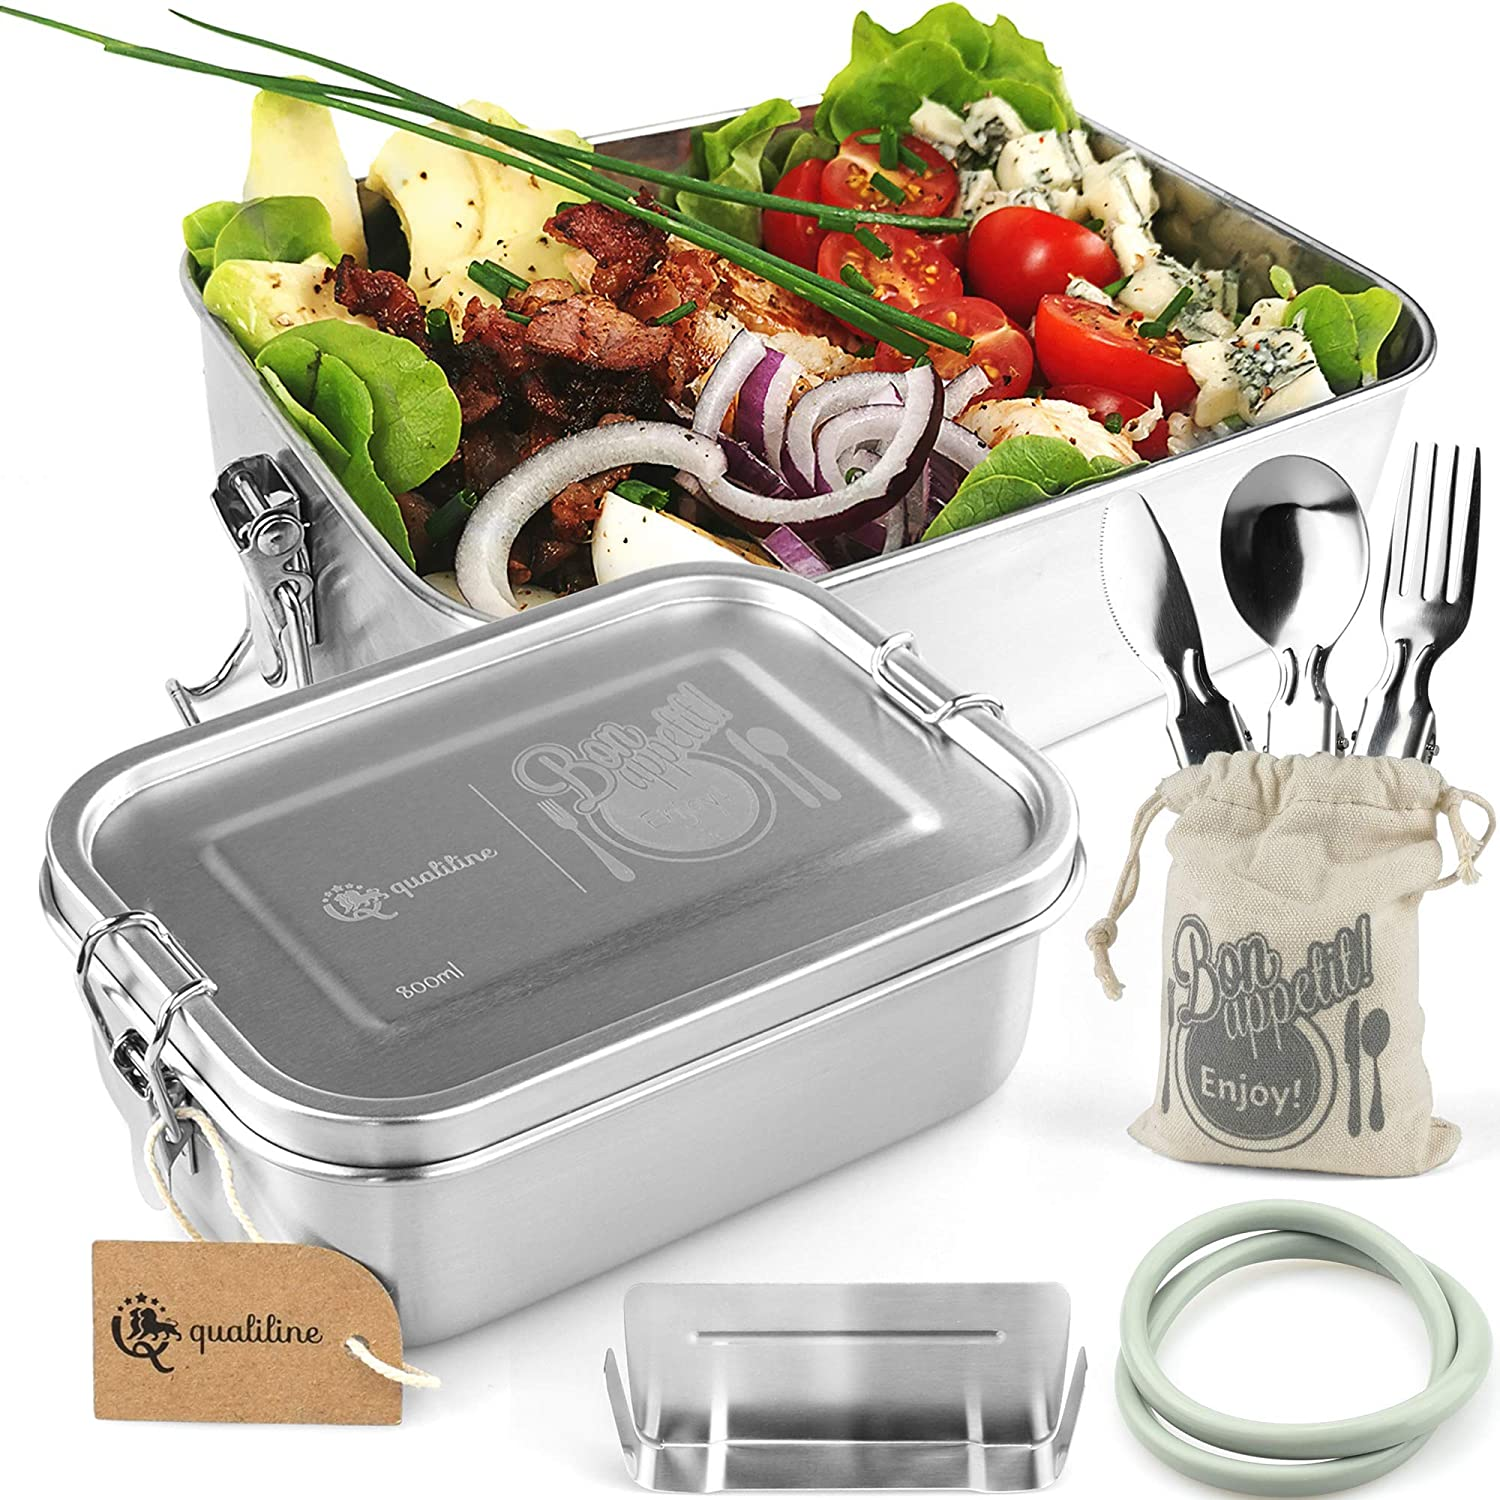 QualiLine - Stainless Steel Bento Box Adult Lunch Box 27/40oz Bento Boxes for Kids Lunches Salad Container for Lunch Adjustable Divider Perfect Bento Lunch Box Bento Box for Kids Or Adult Bento Box